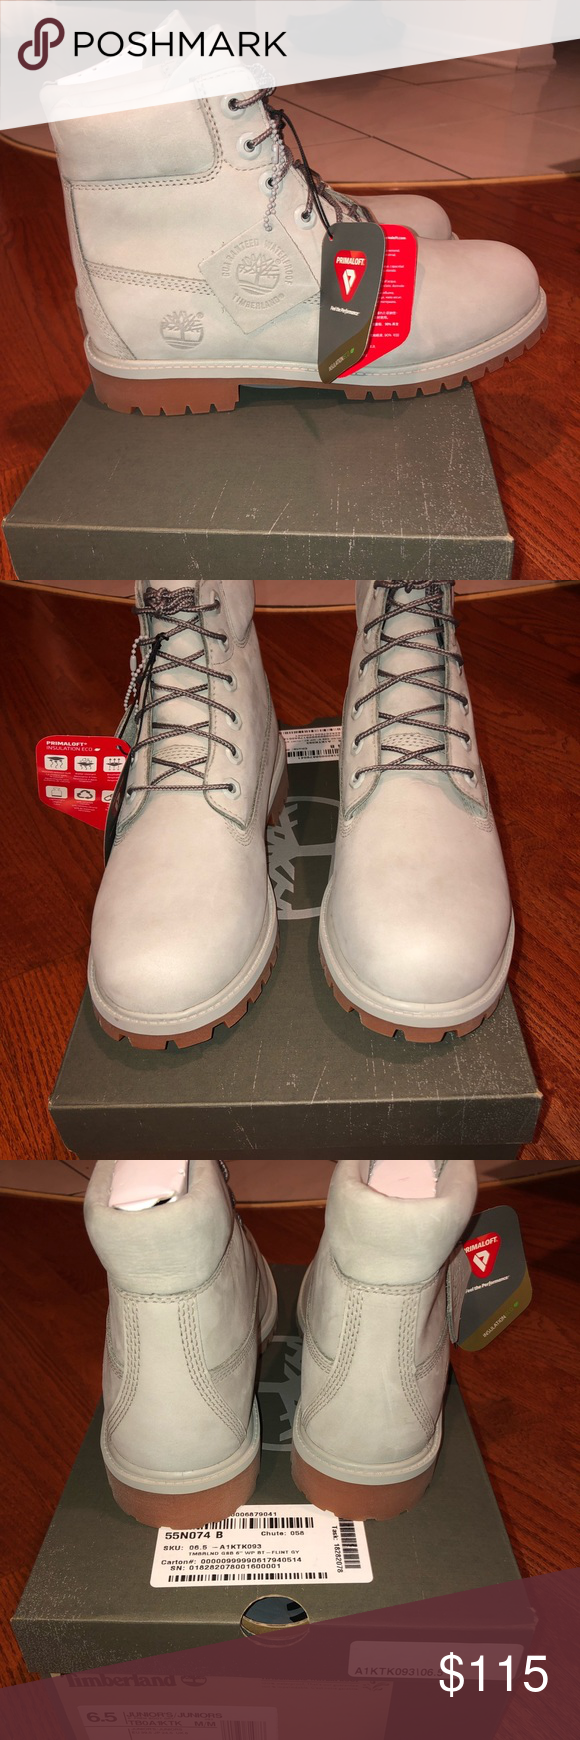 bac01d9976d Timberland 6 Inch Premium Boots NWT BRAND NEW IN BOX Size 6 Juniors ...